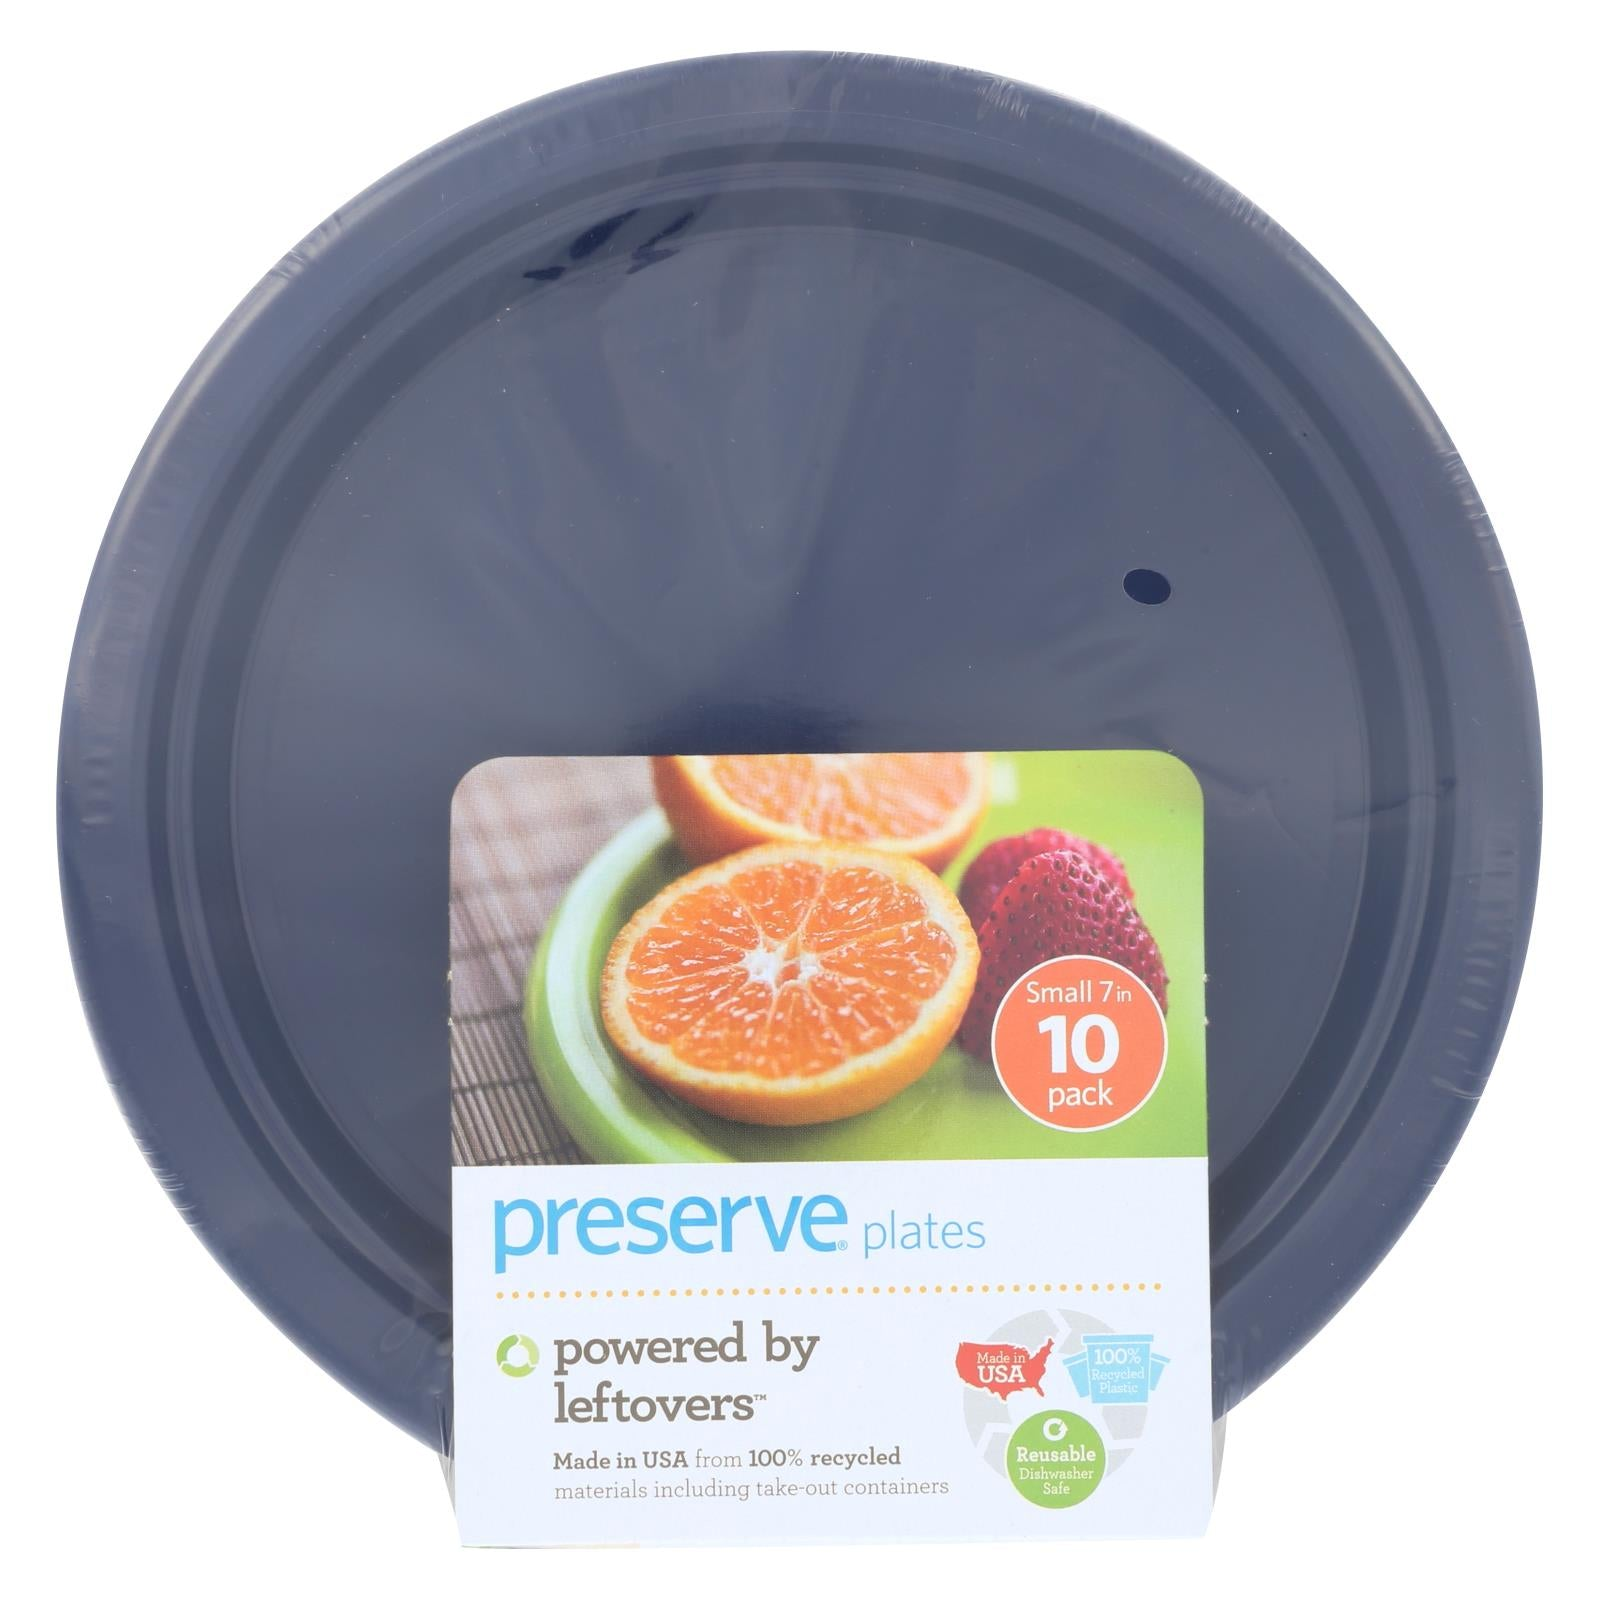 Buy Preserve On the Go Small Reusable Plates - Midnight Blue - 10 Pack - 7 in - Tableware from Veroeco.com